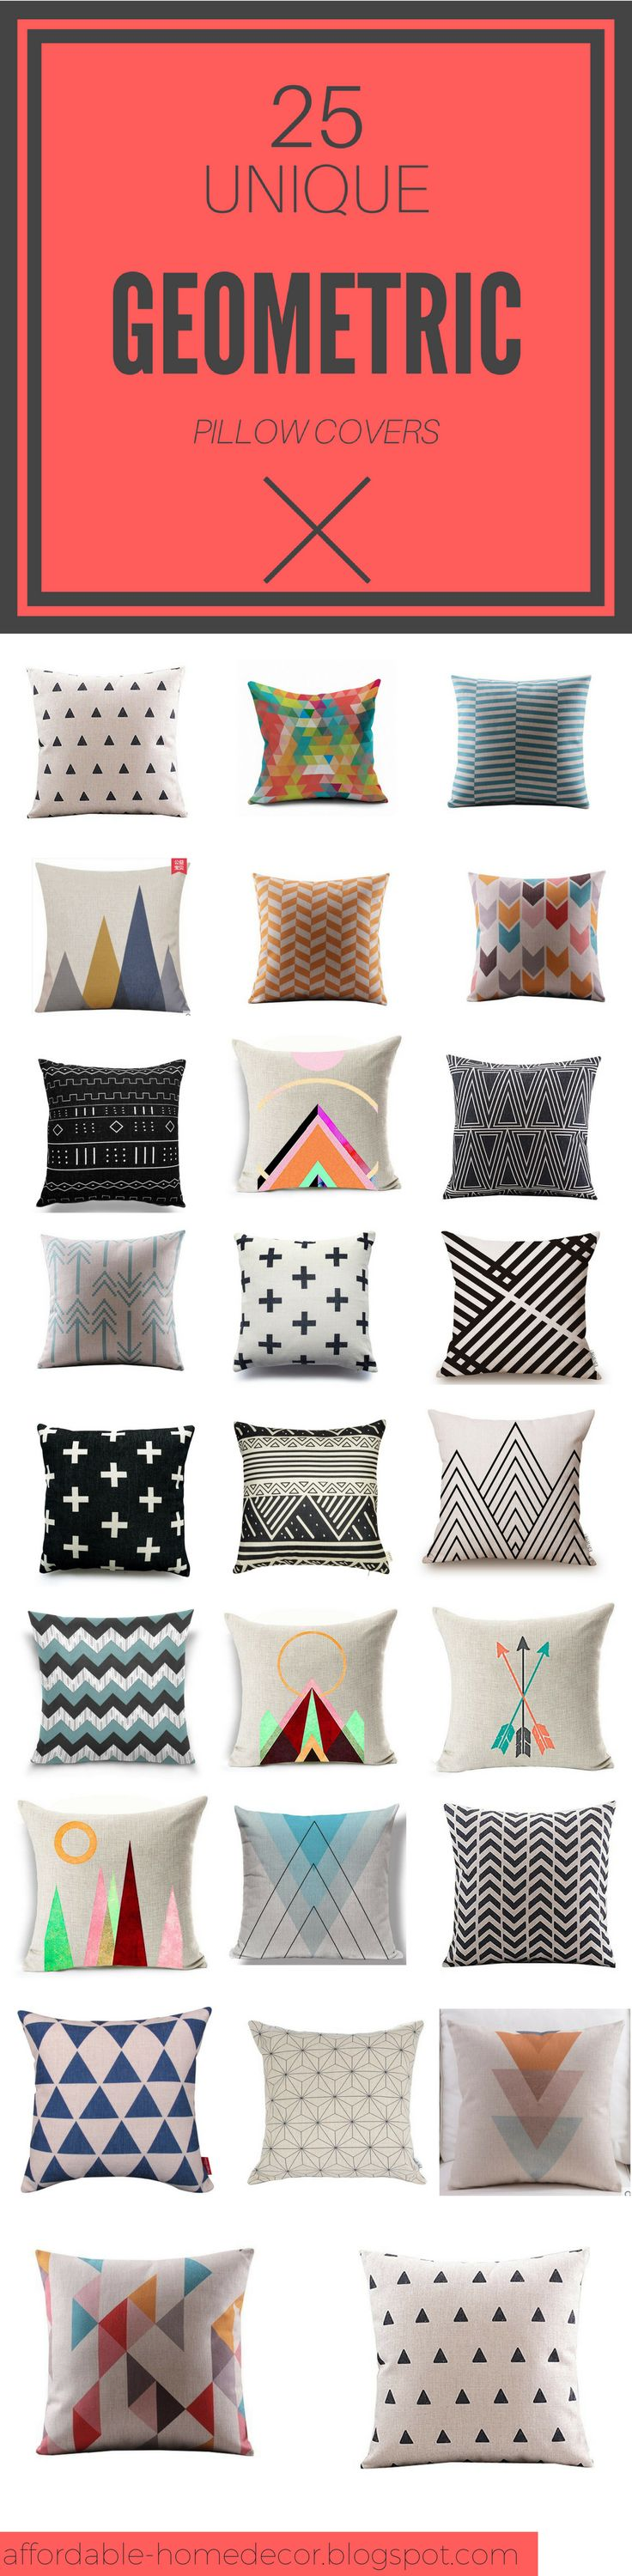 Are you looking for some modern pillow cover? I believe that you find the right one for your place in this list of 25 cheap 18 x 18 inches pillow covers with geometric pattern!